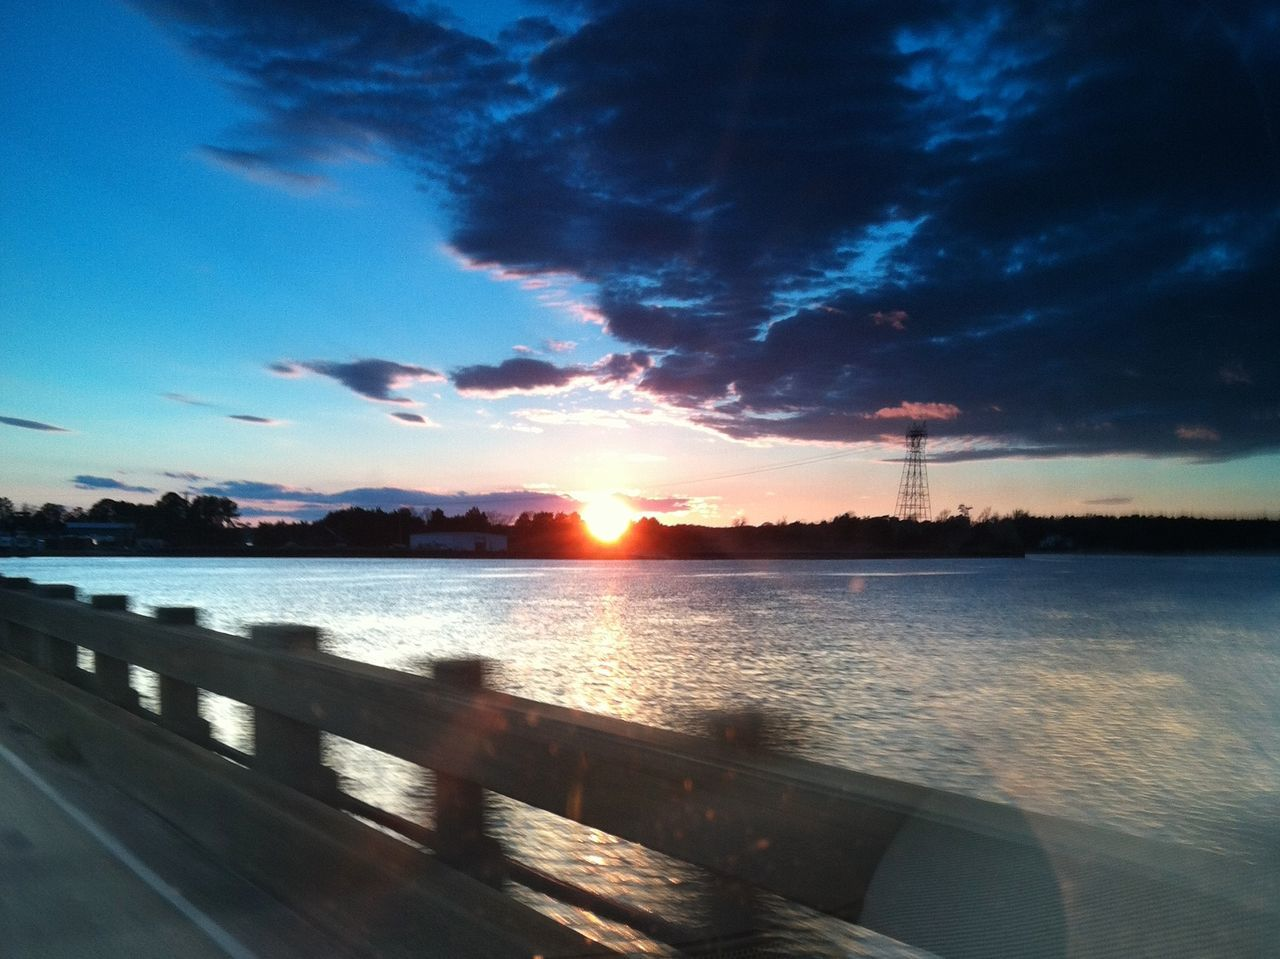 Beauty In Nature Charleston SC Cloud Cloud - Sky Distant Dramatic Sky From The Window Of A Car Light Majestic Outdoors Scenics Sea Silhouette South Carolina Sun Sunset Sunset_collection Tranquil Scene Tranquility United States Water